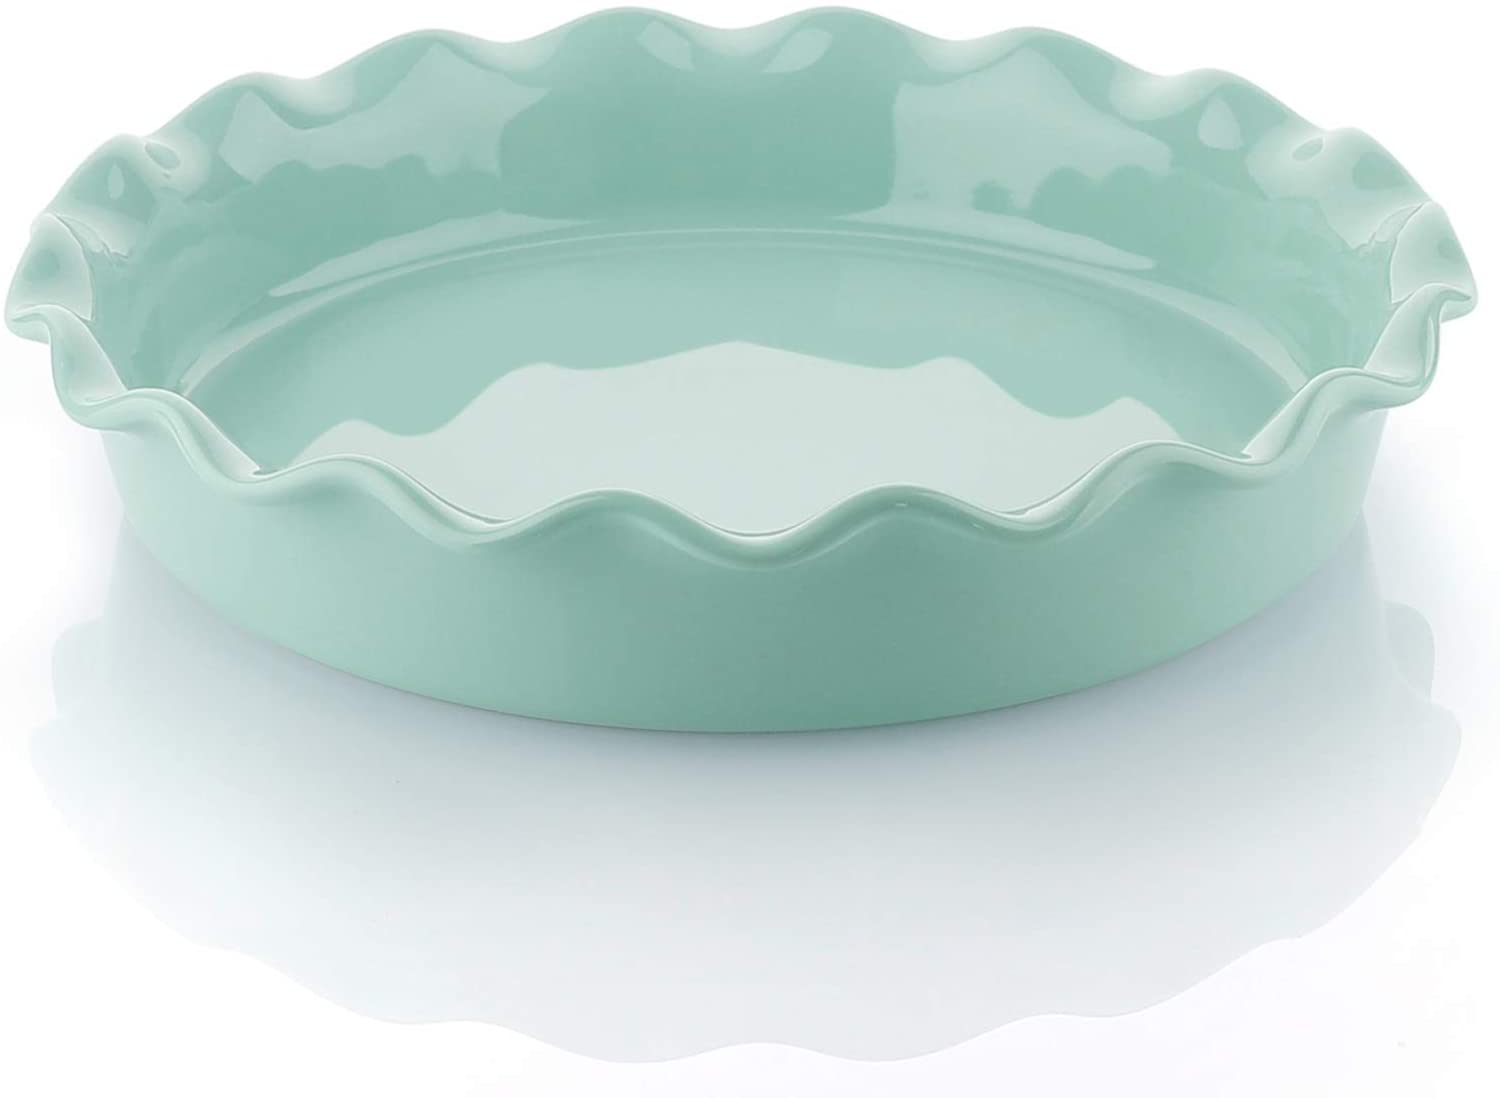 Sweese 518.109 Porcelain Pie Pan, Round Pie Plate Baking Dish with Ruffled Edge, 10.5 Inches, Mint Green